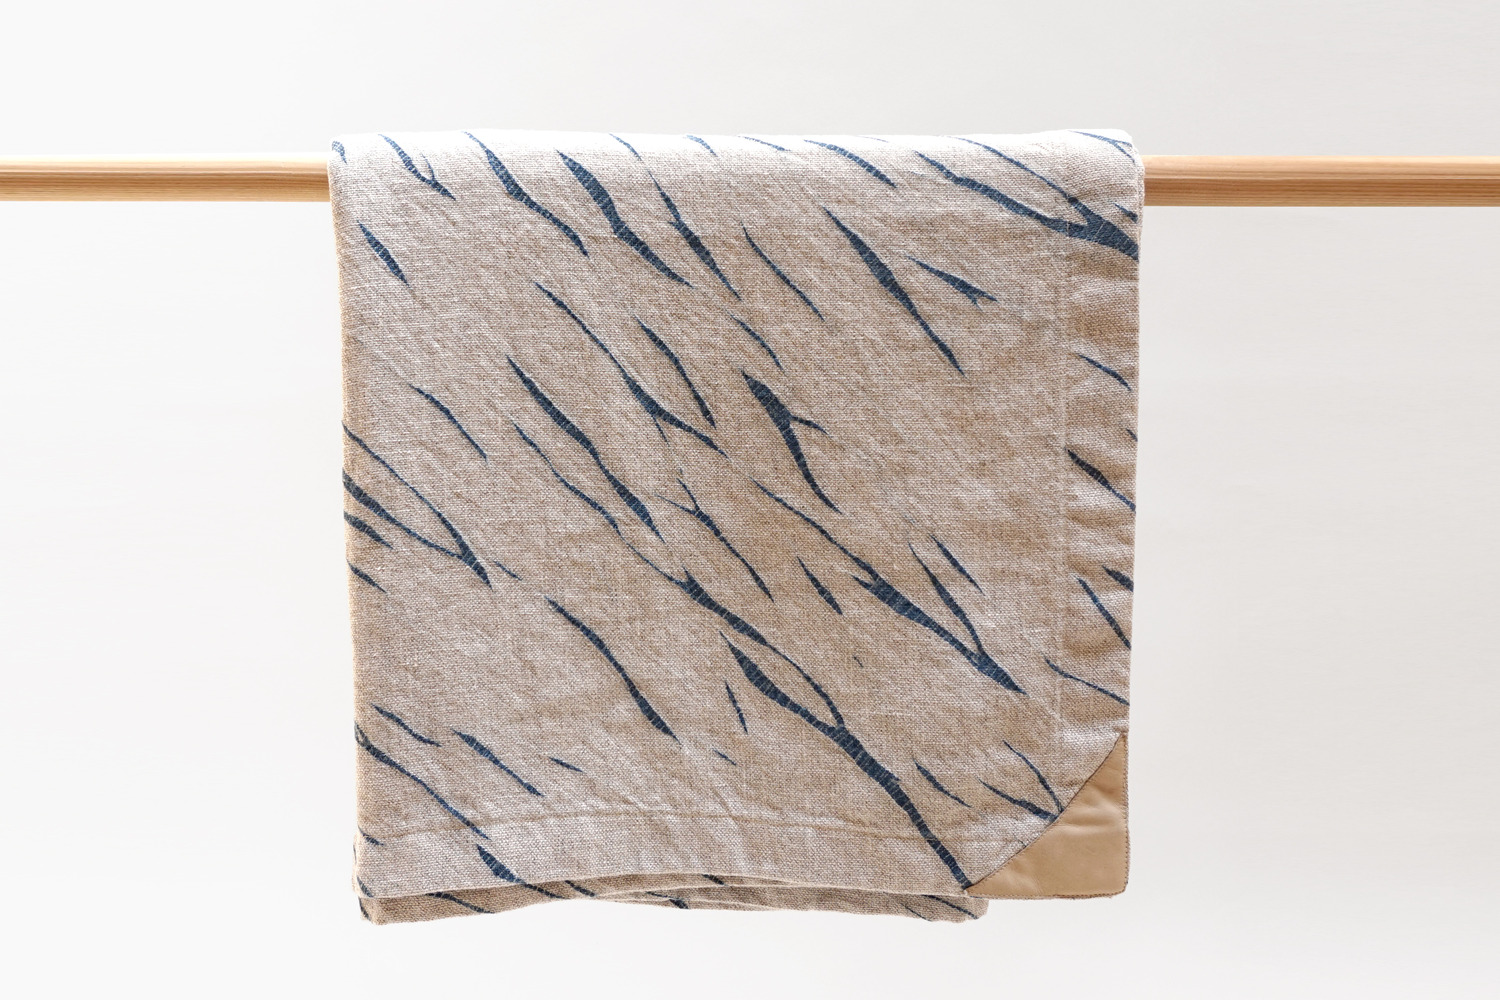 Commune Design & Small Trade Co Shibori Blanket $1100